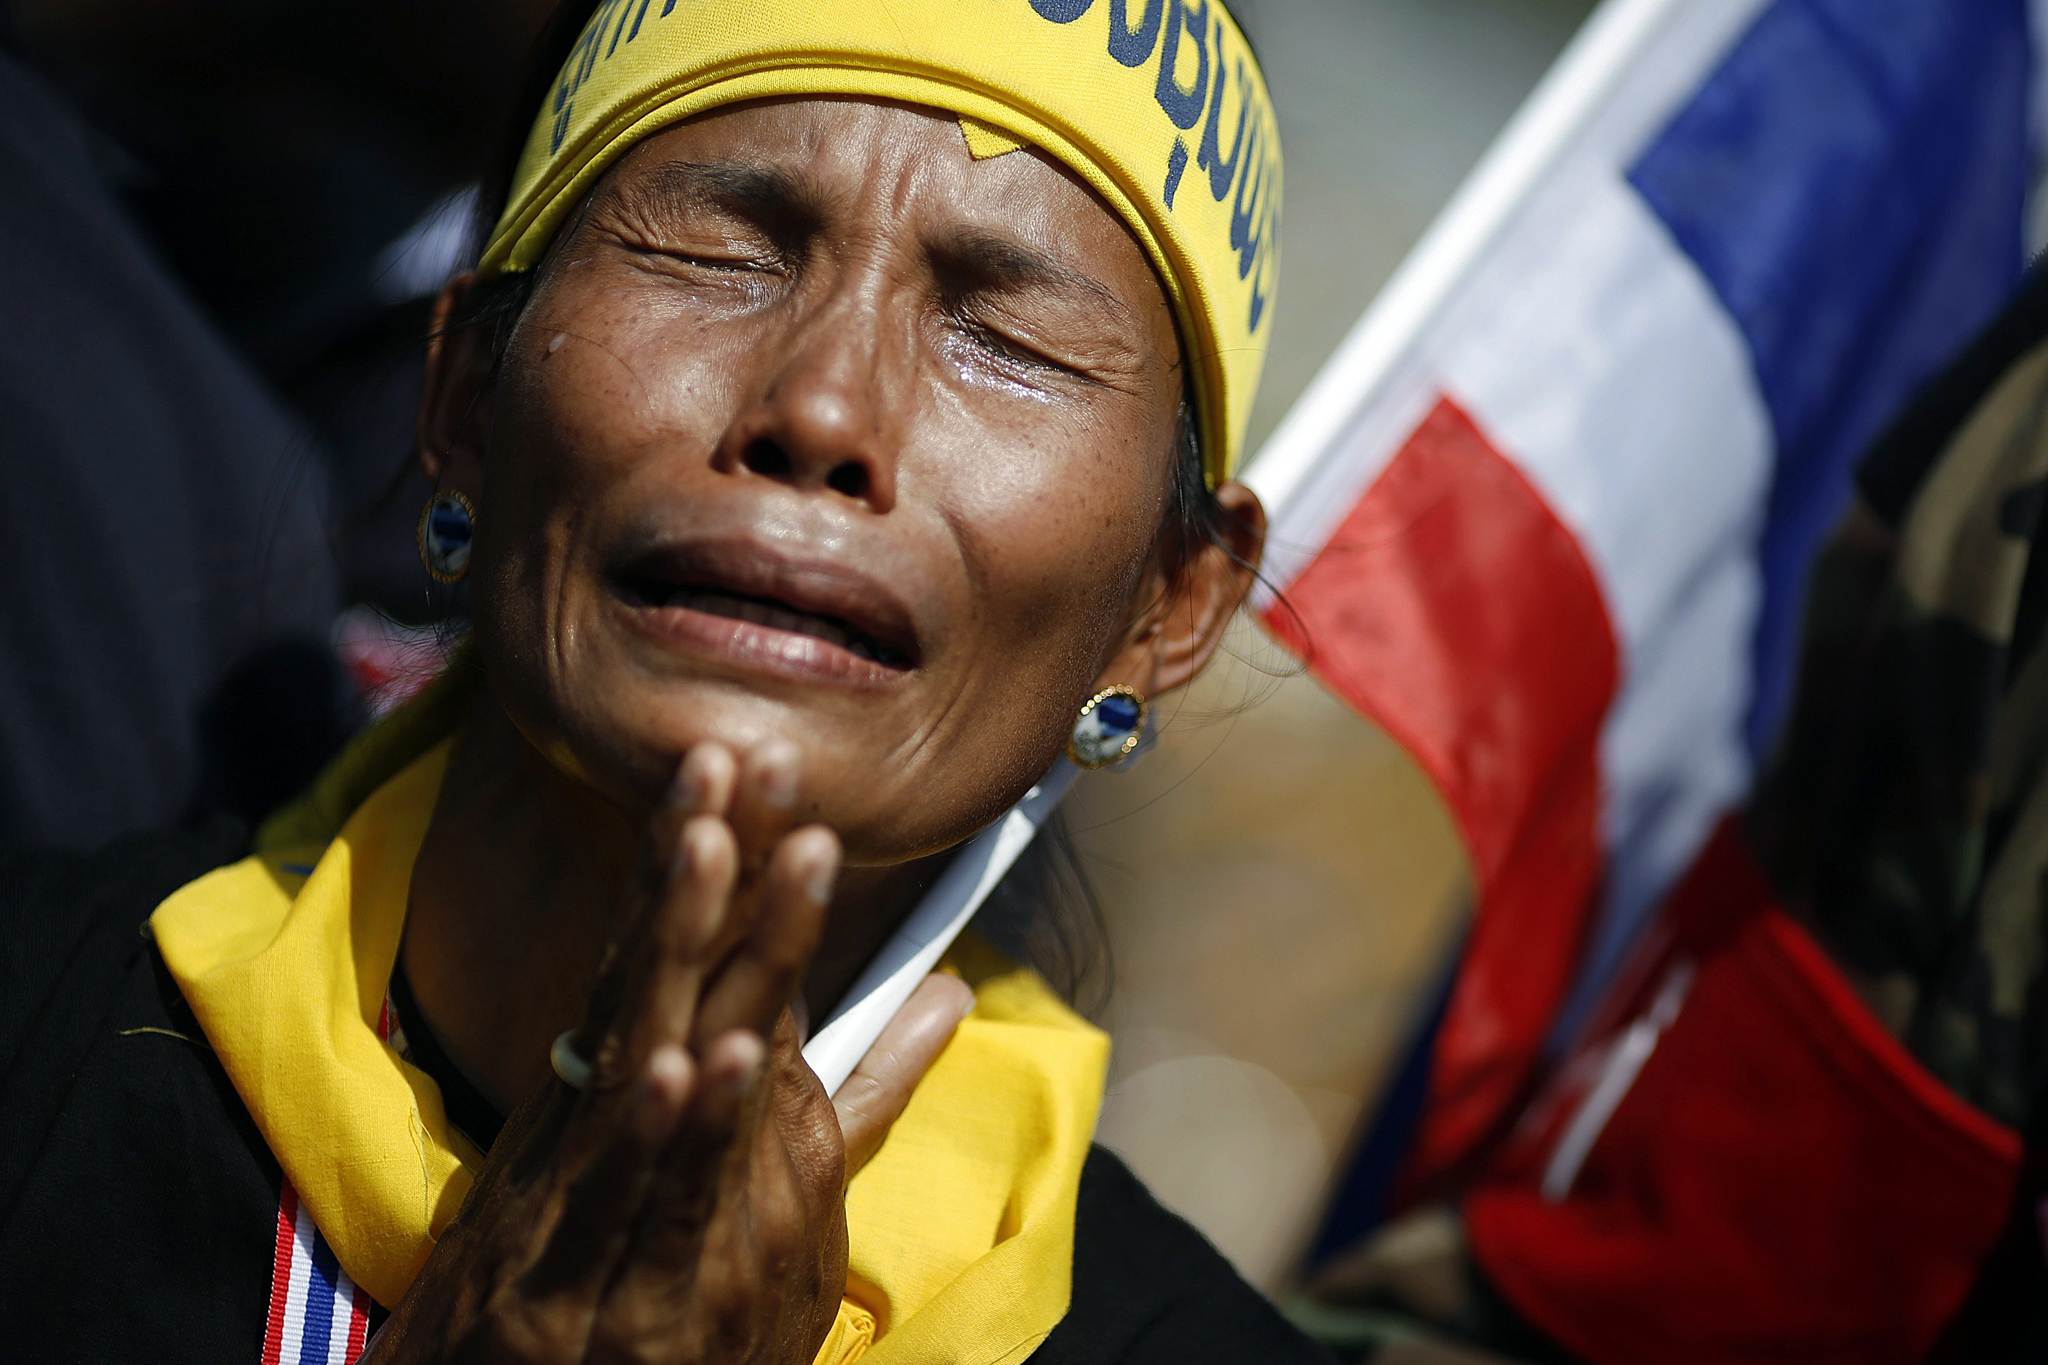 An anti-government protester cries as she joins others protesting outside the Defense Ministry in central Bangkok November 28, 2013. Thailand's embattled Prime Minister Yingluck Shinawatra breezed through a no-confidence vote in parliament on Thursday as confusion emerged over the goals of an anti-government protest movement massing at government offices.